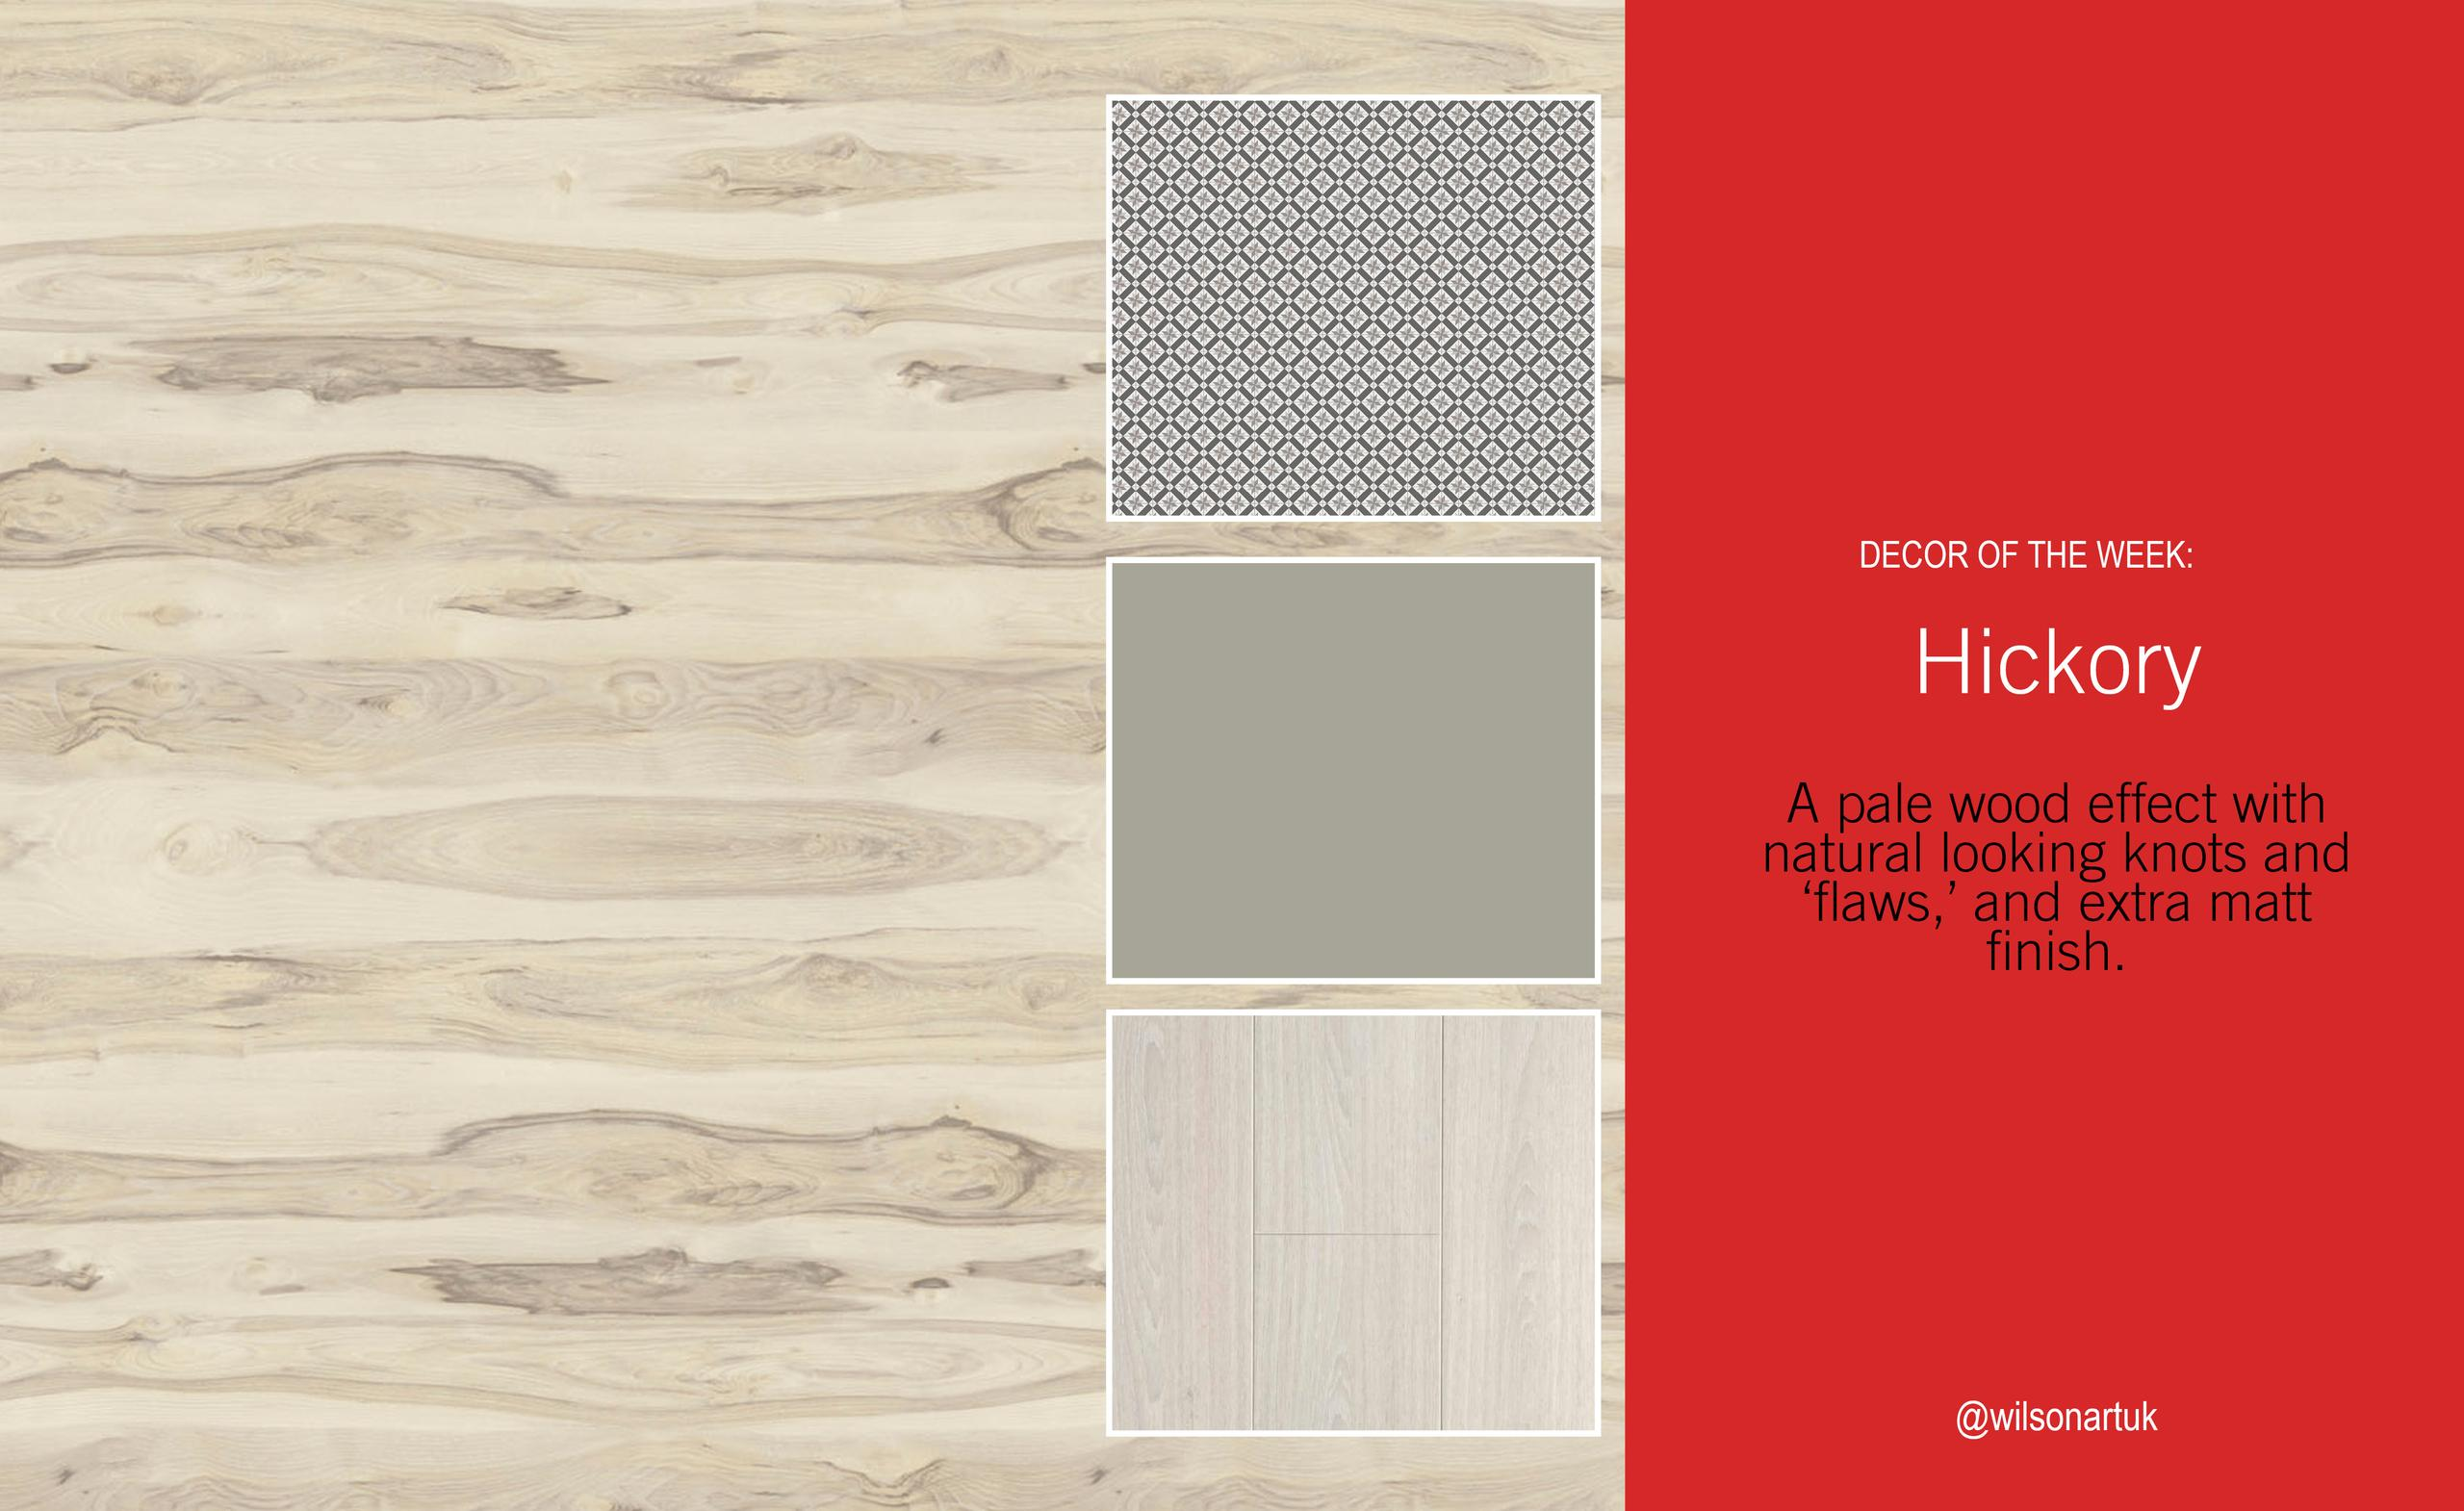 Decor of the Week: Hickory